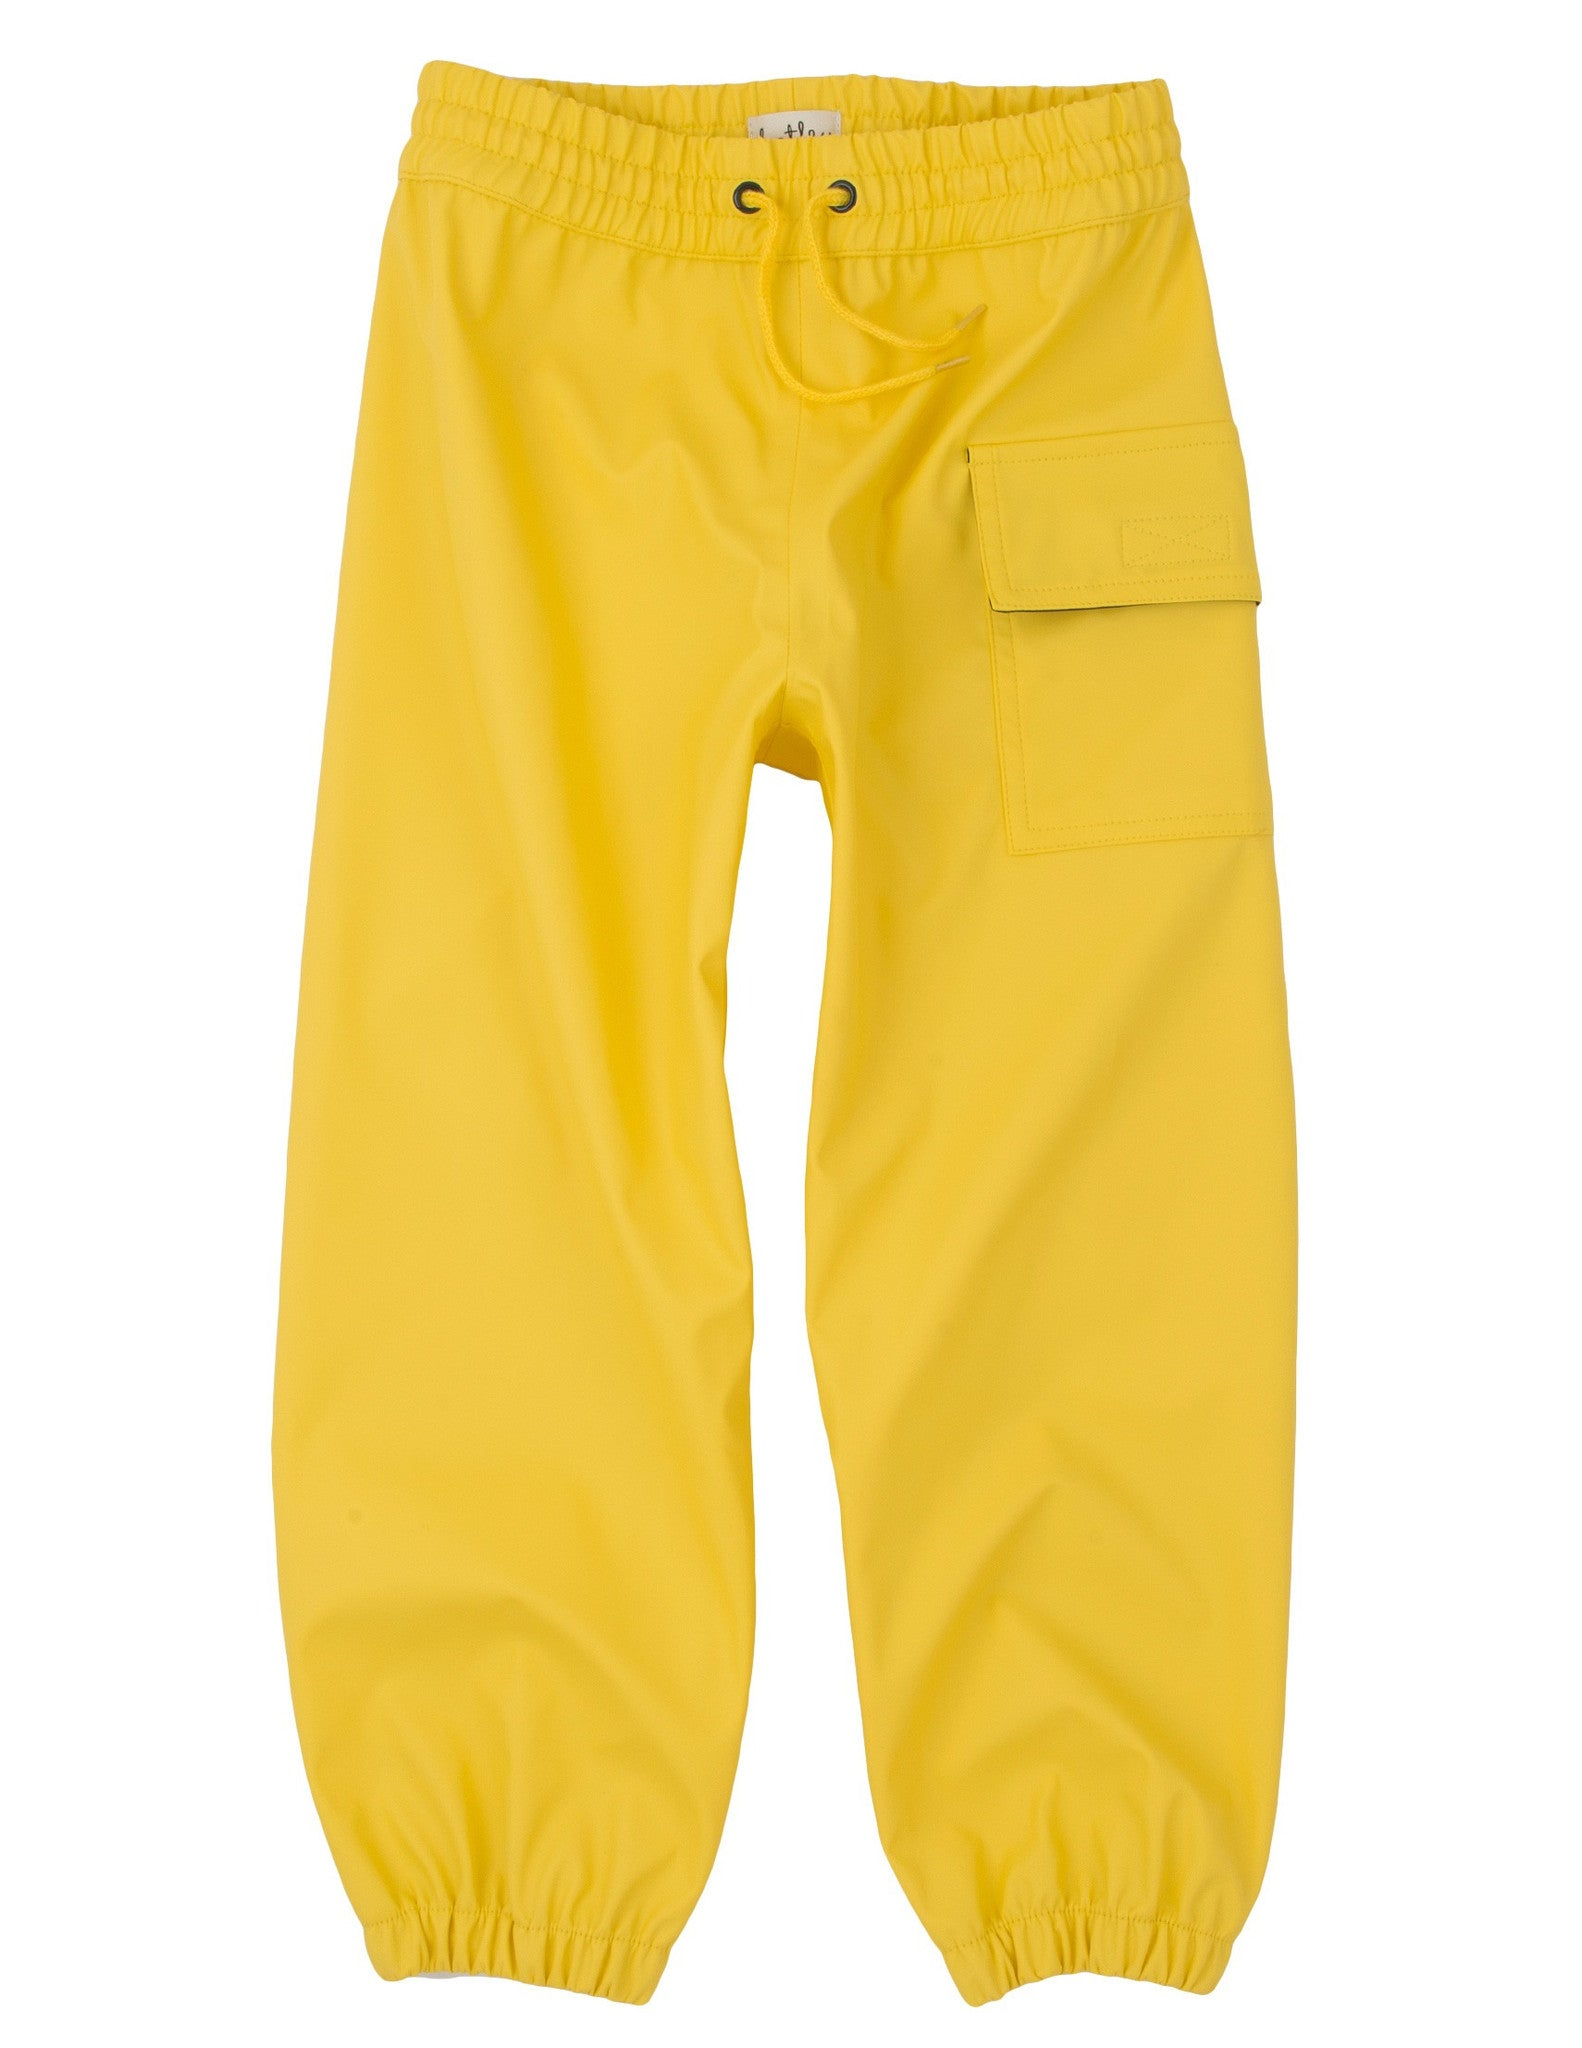 Hatley Kids Yellow Waterproof Splash Pants